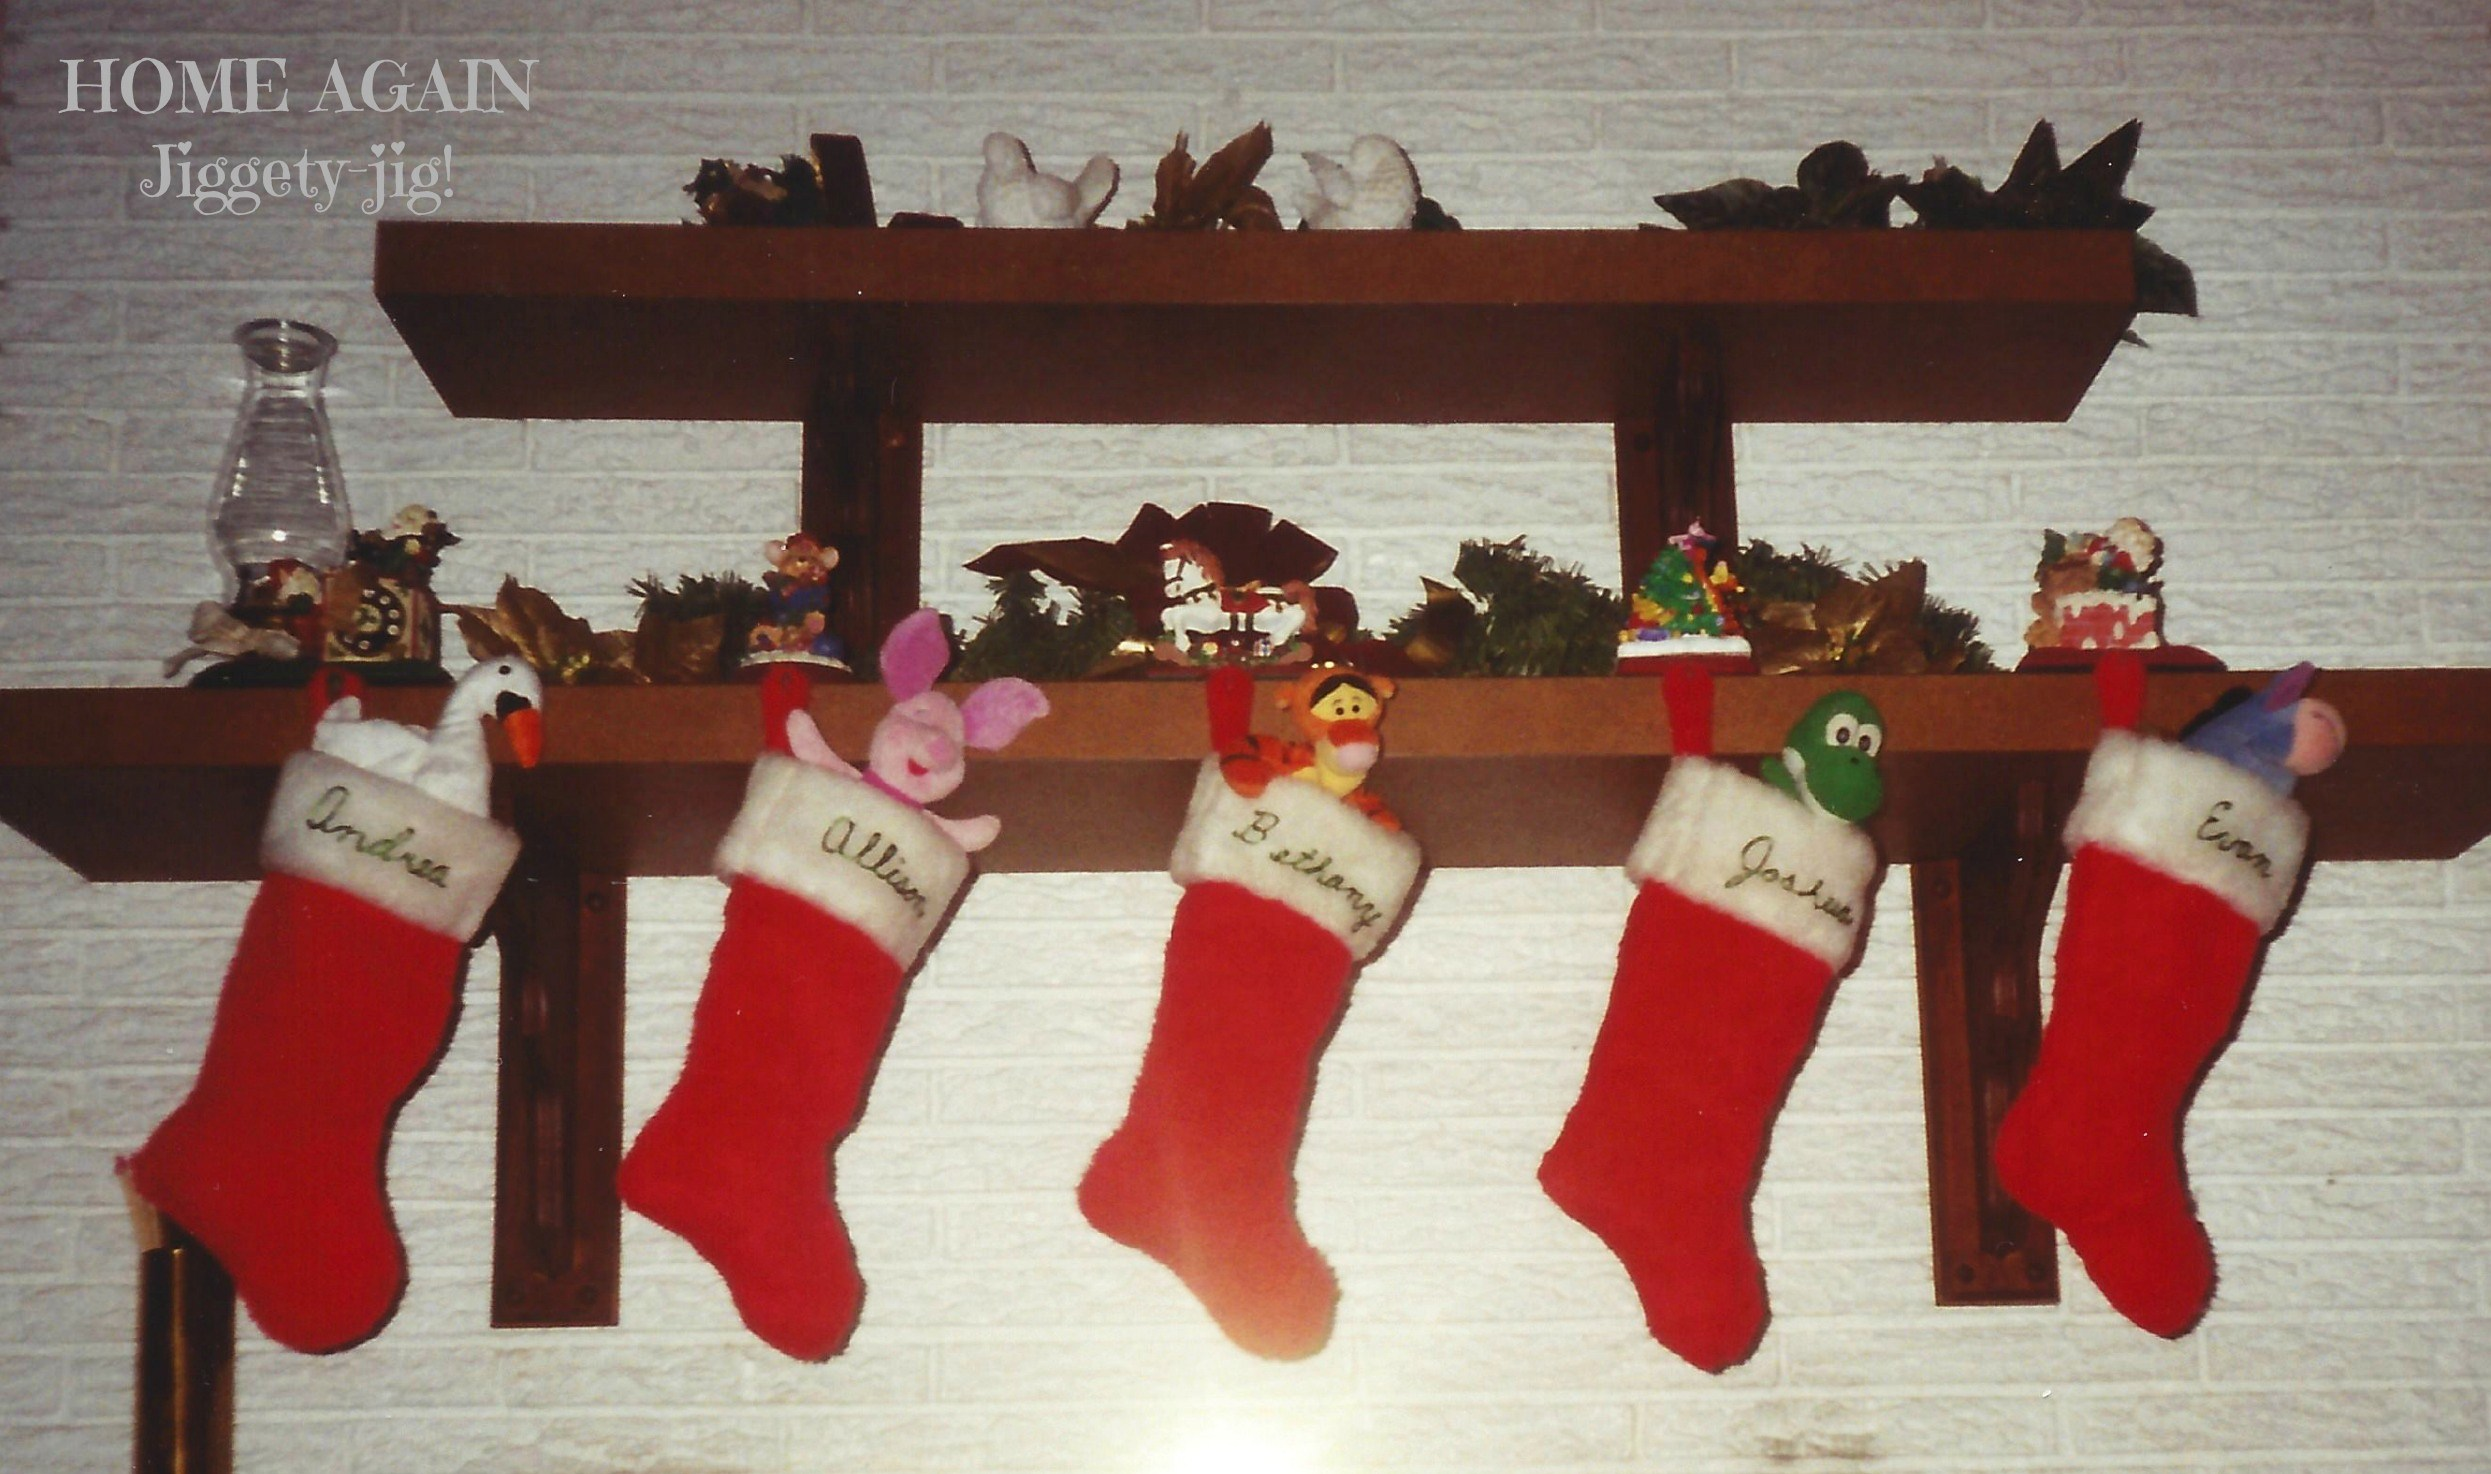 These Christmas stockings from 1998 were perhaps my best attempt at doing a great job of filling Christmas stockings for our children.